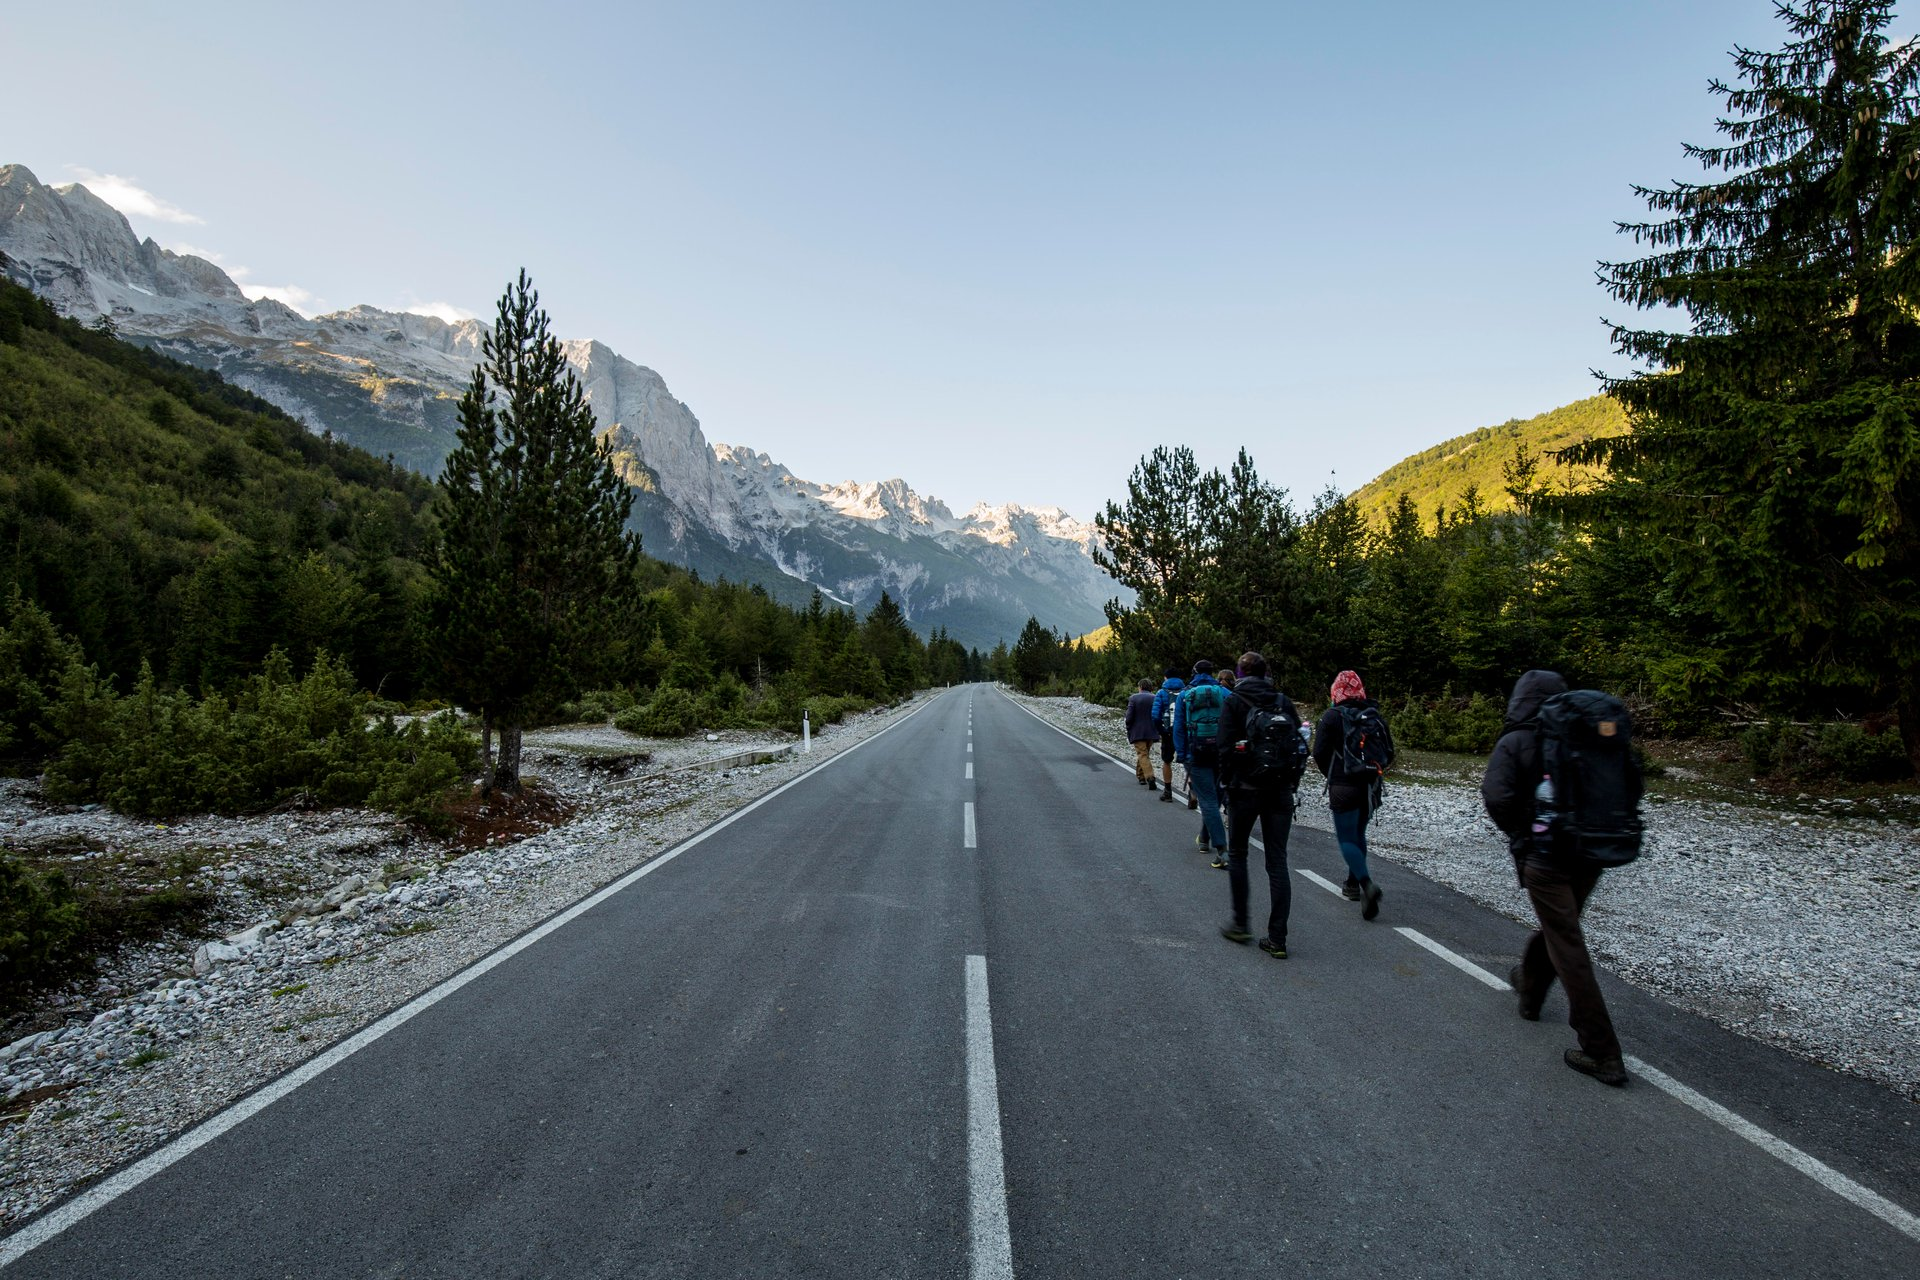 Trekking from Valbona to Theth in Albania 2020 - Best Time